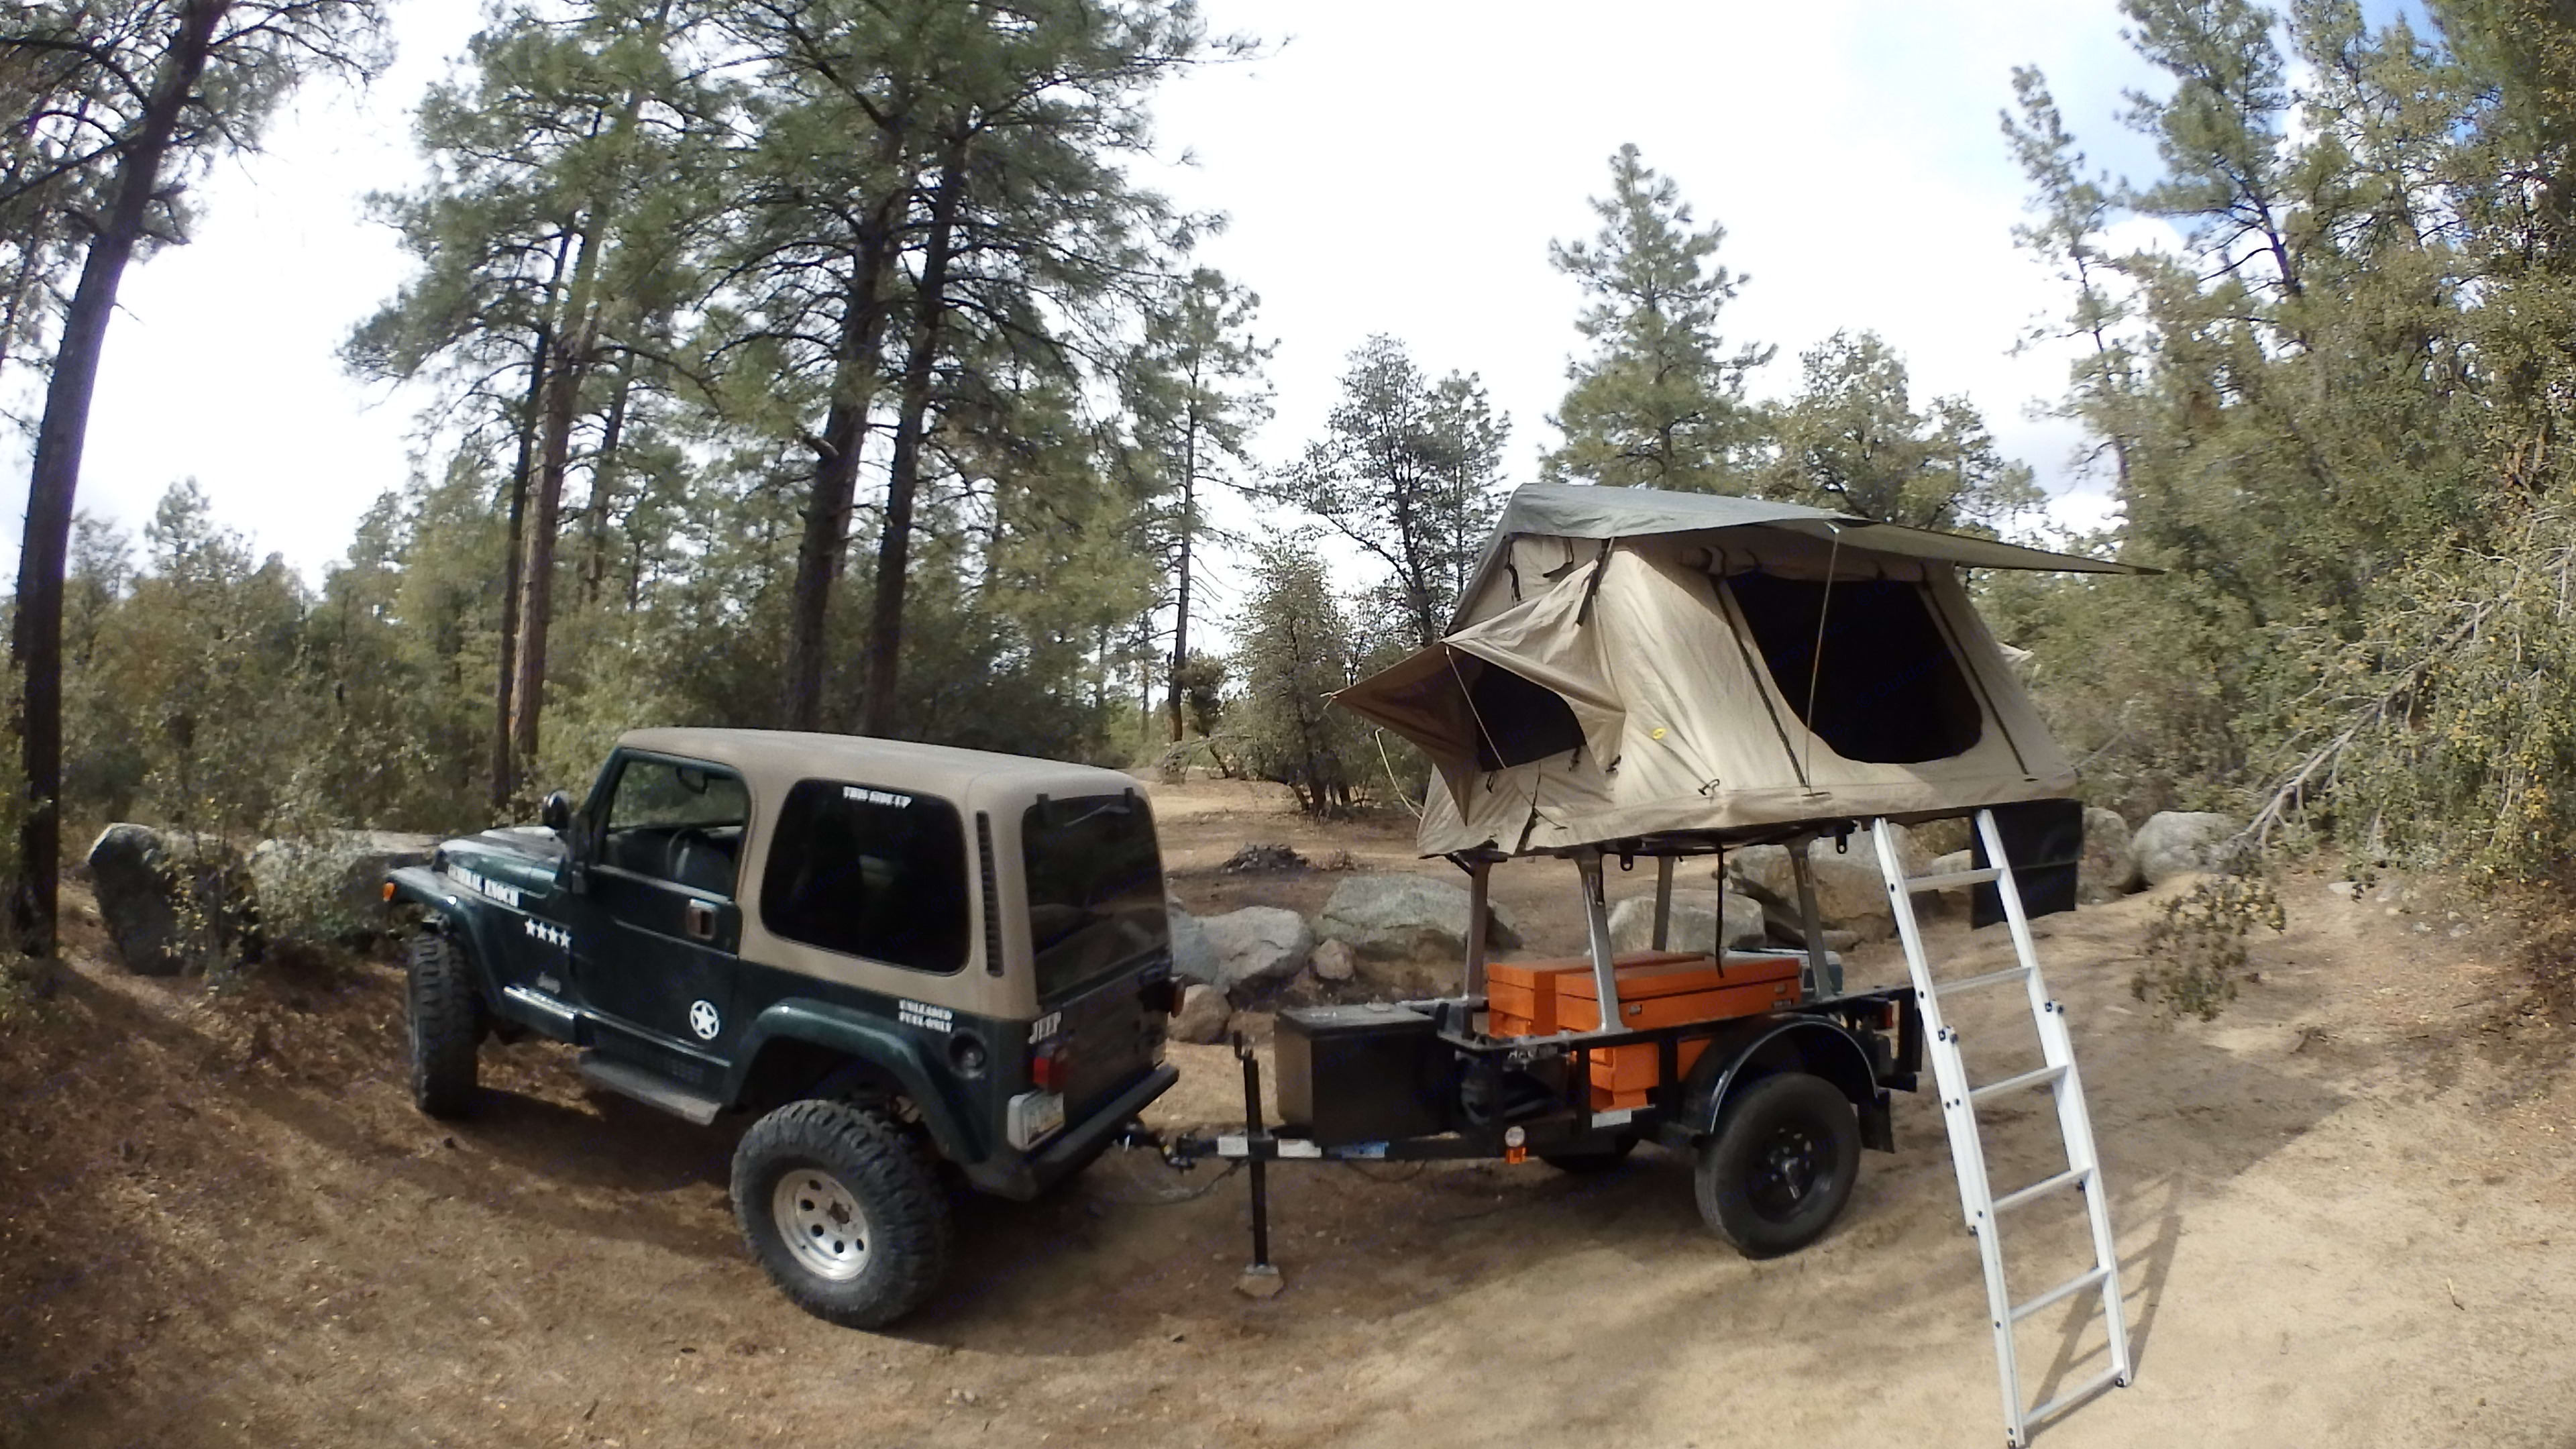 Tows the small trailer very well.. Jeep Wrangler 2000